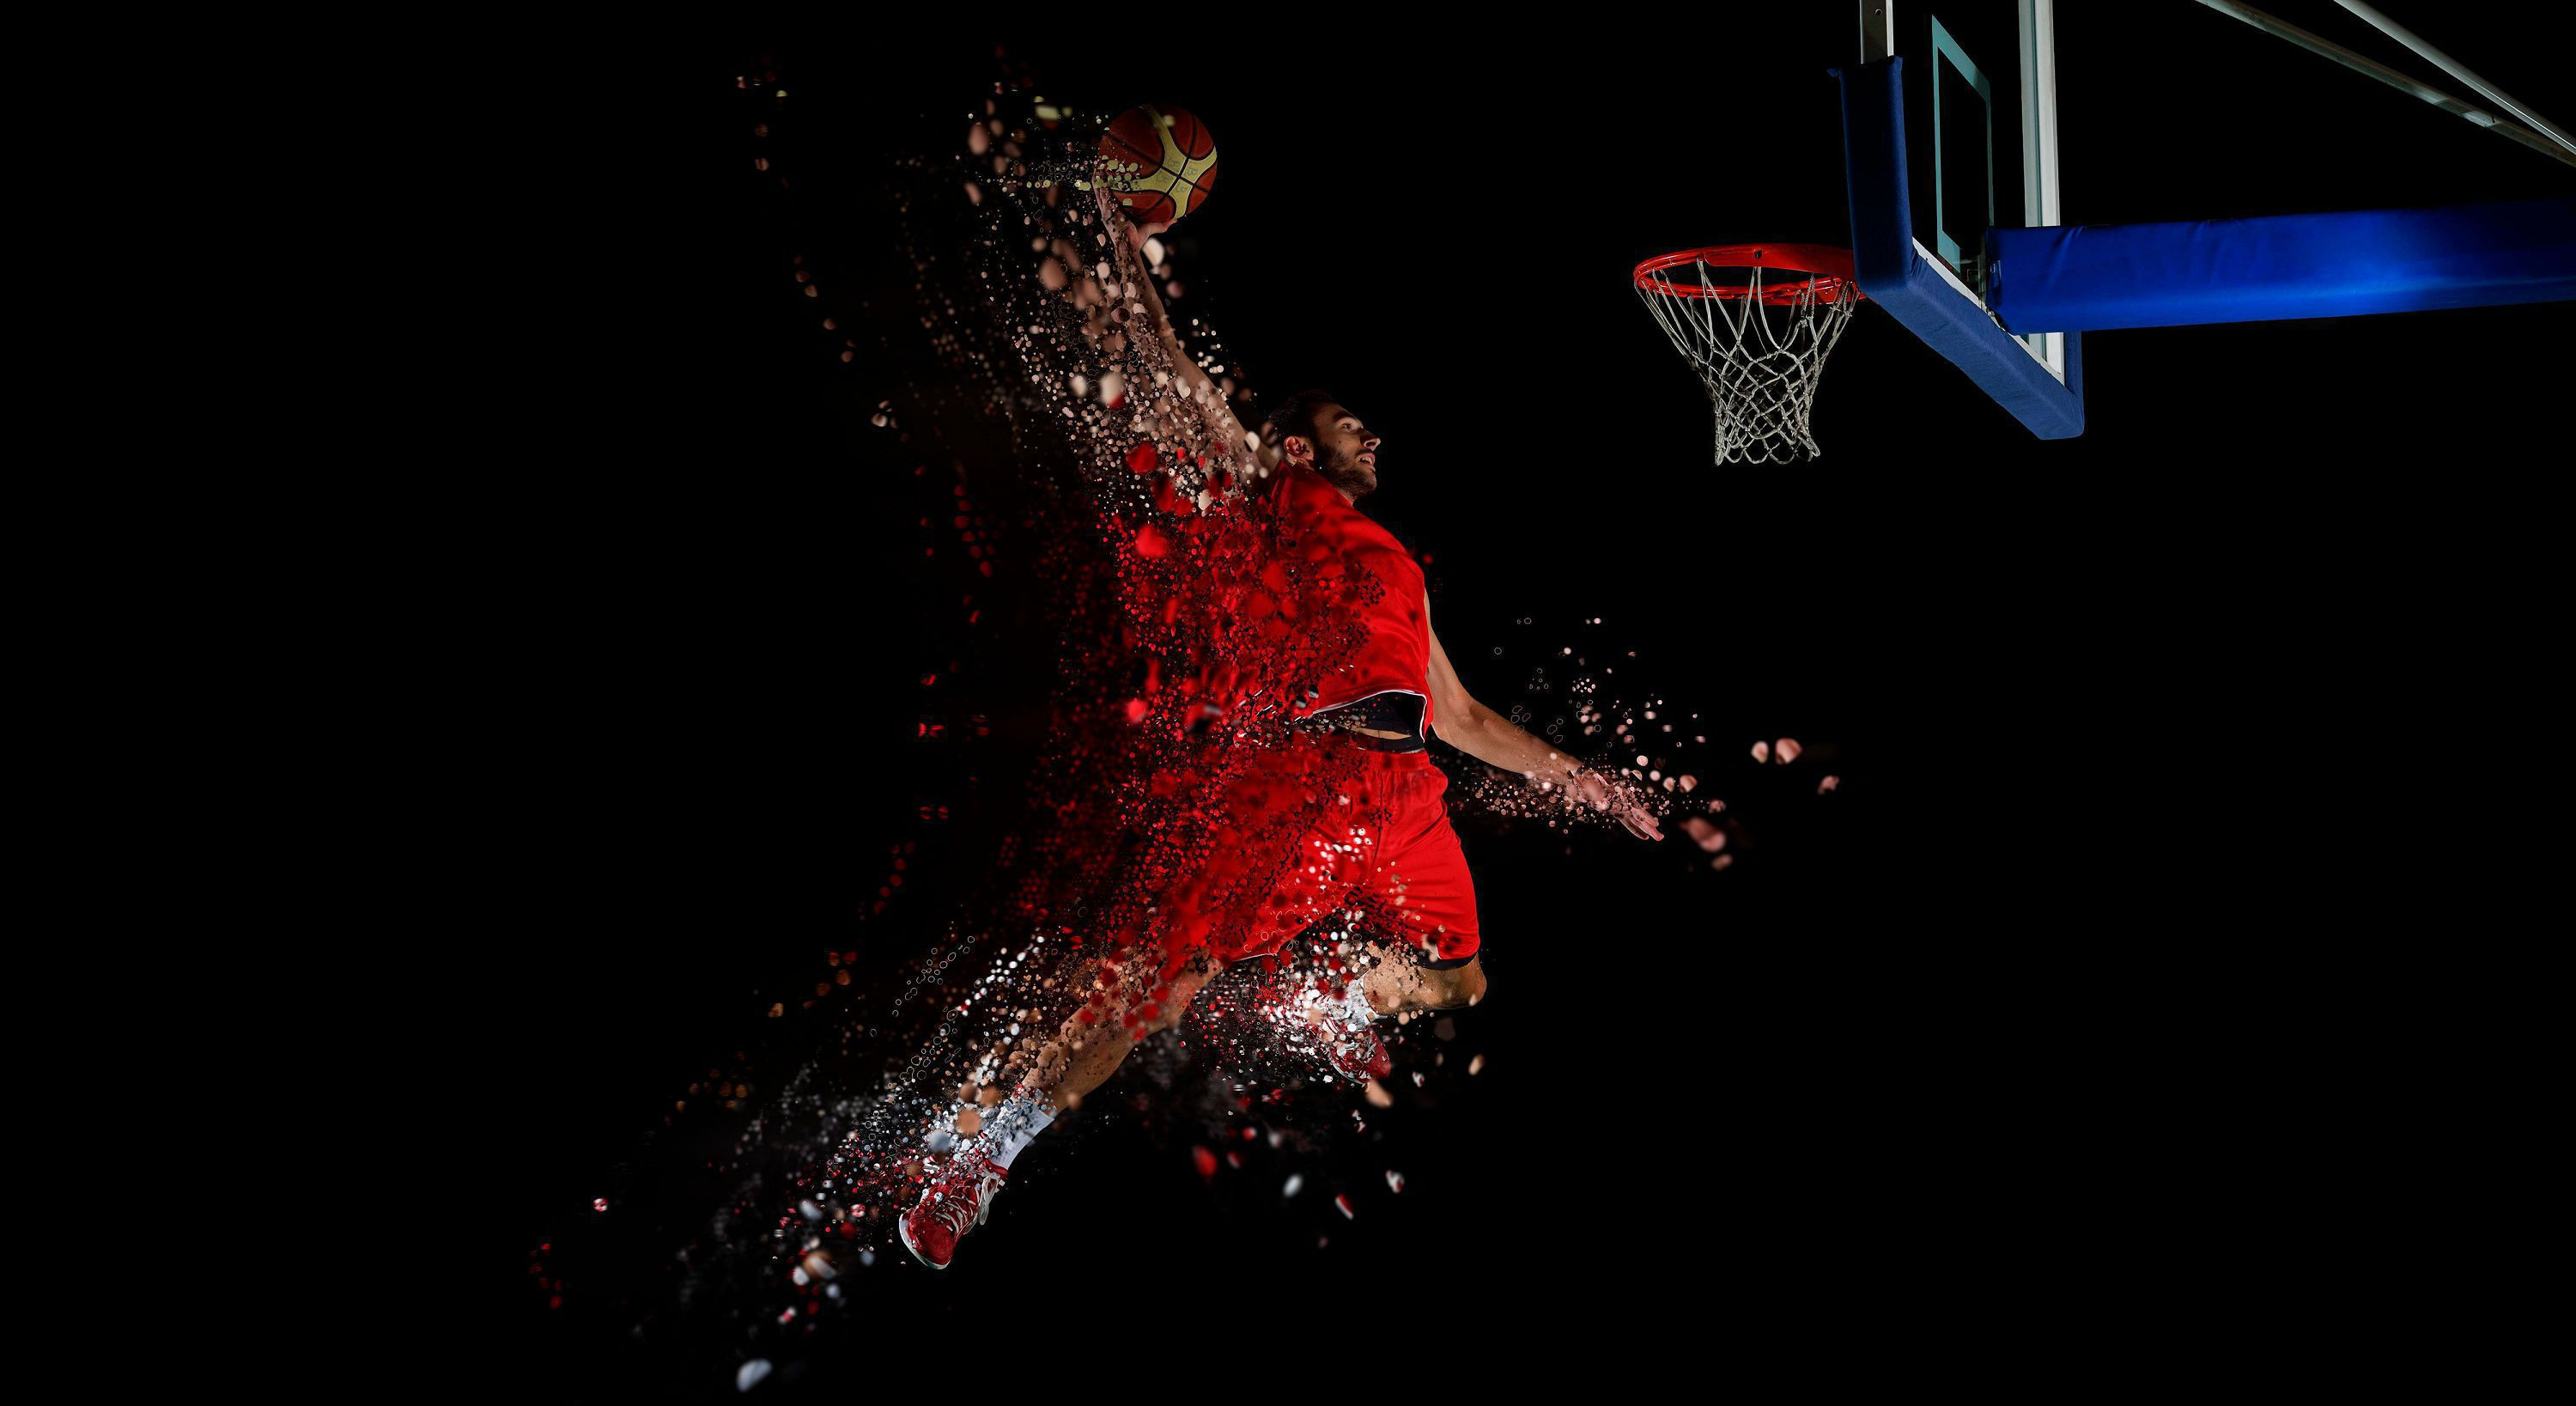 Basketball Computer Backgrounds